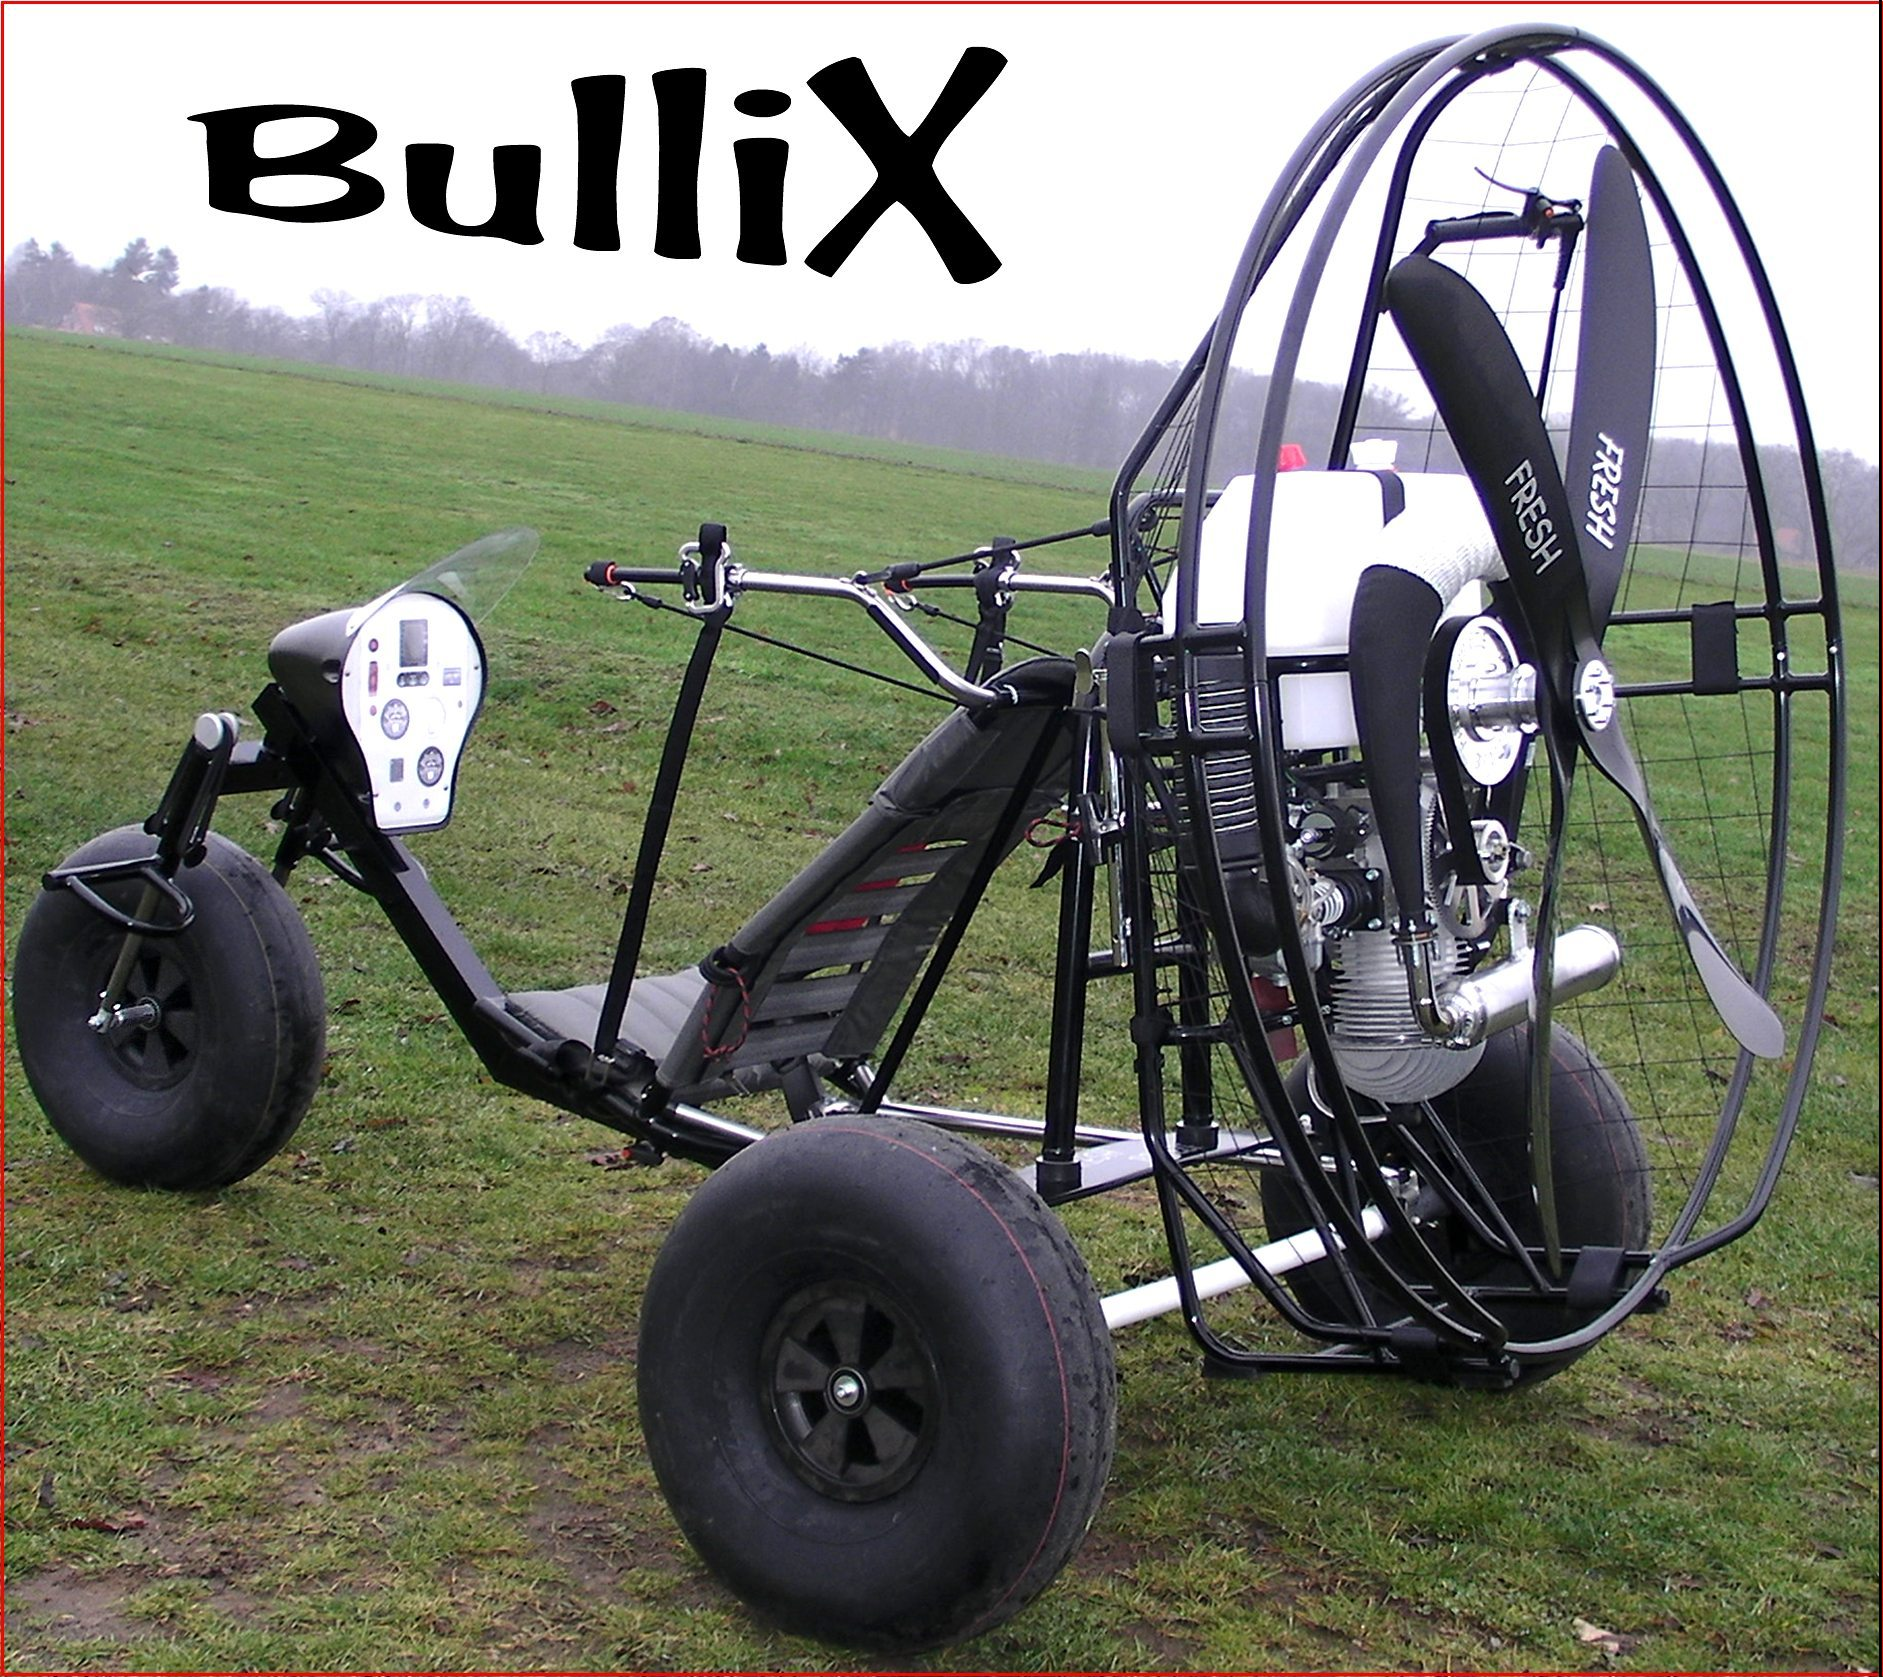 rc buggy for sale with Bullix on Traxxas Trx4 Land Rover 110 Crawler Red furthermore Watch furthermore Best Rc Trucks further Ariel Atom 3 5r Grown Mans Go Kart also Dune buggys.